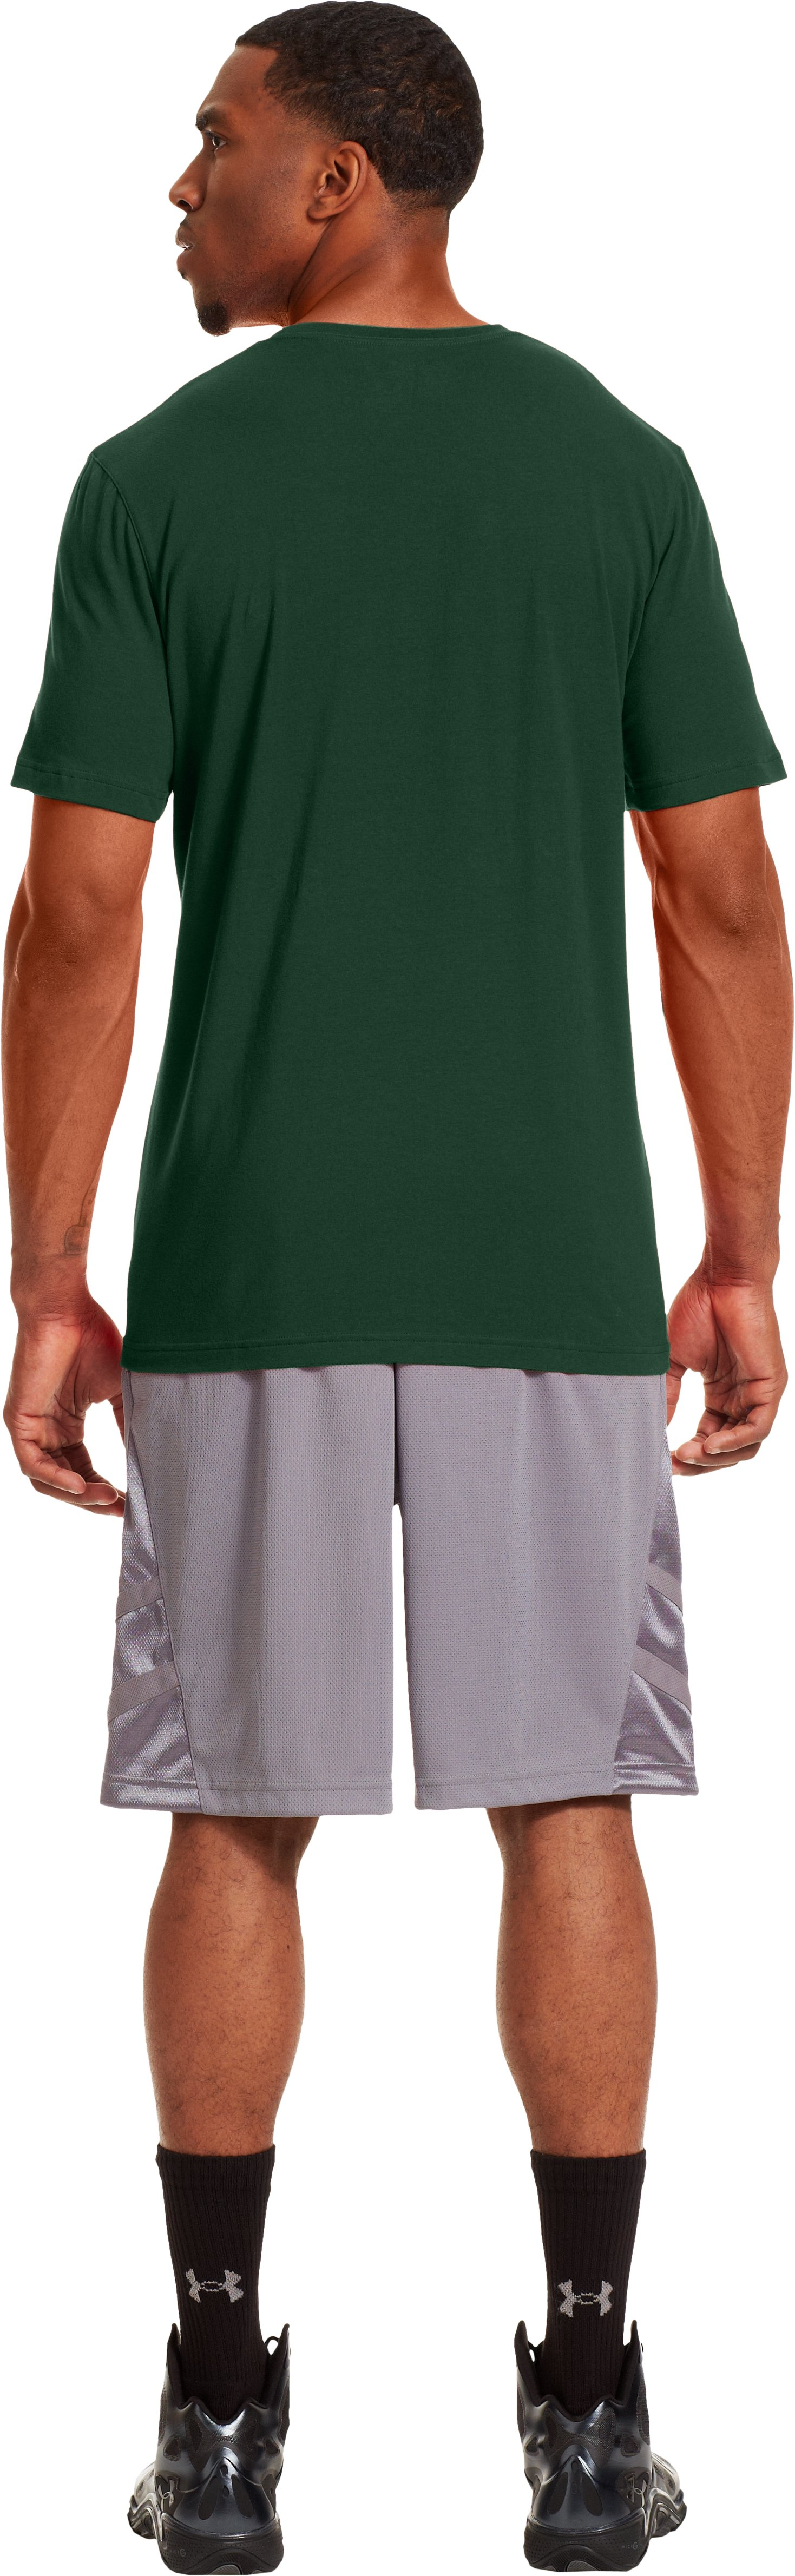 Men's Baylor UA Basketball T-Shirt, Forest Green, Back